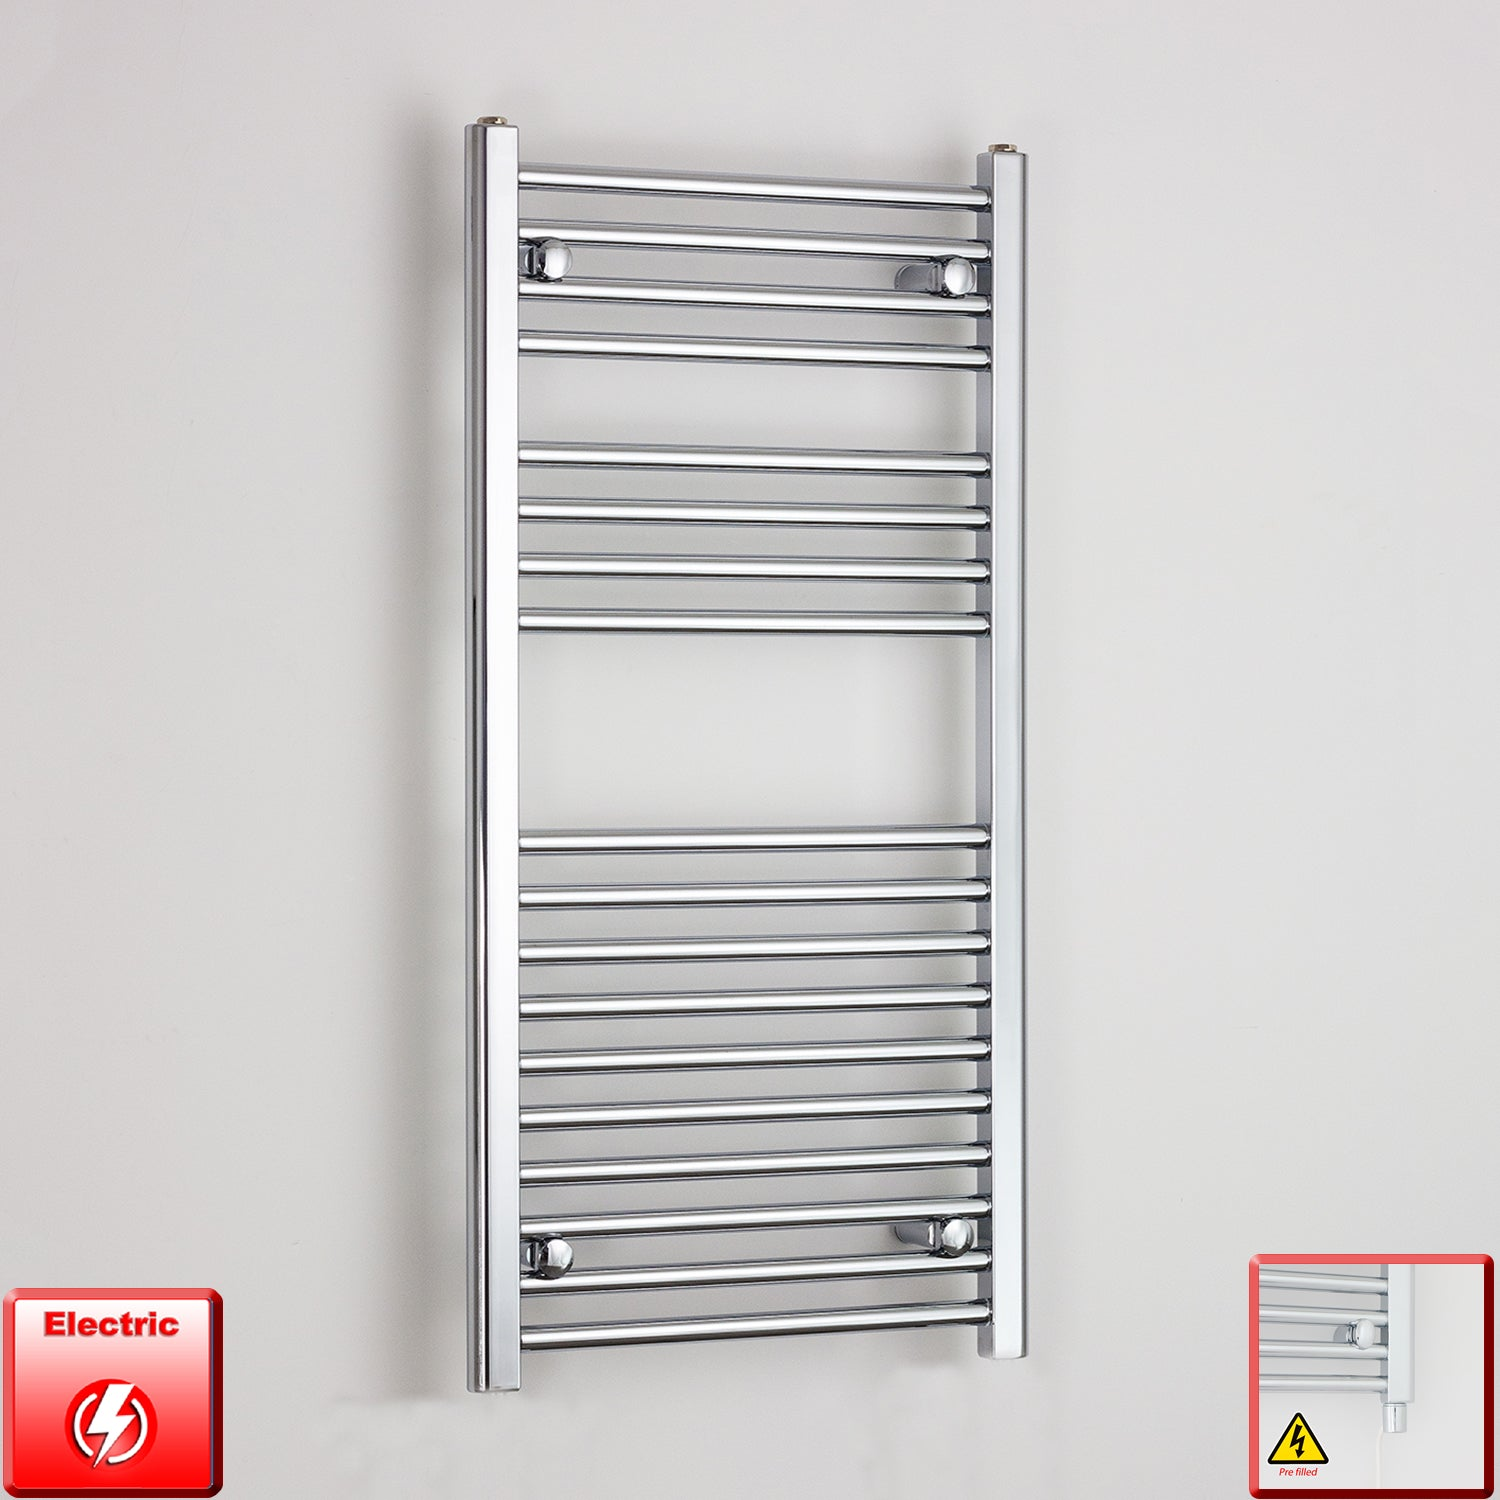 600mm Wide 1000mm High Pre-Filled Chrome Electric Towel Rail Radiator With Single Heat Element